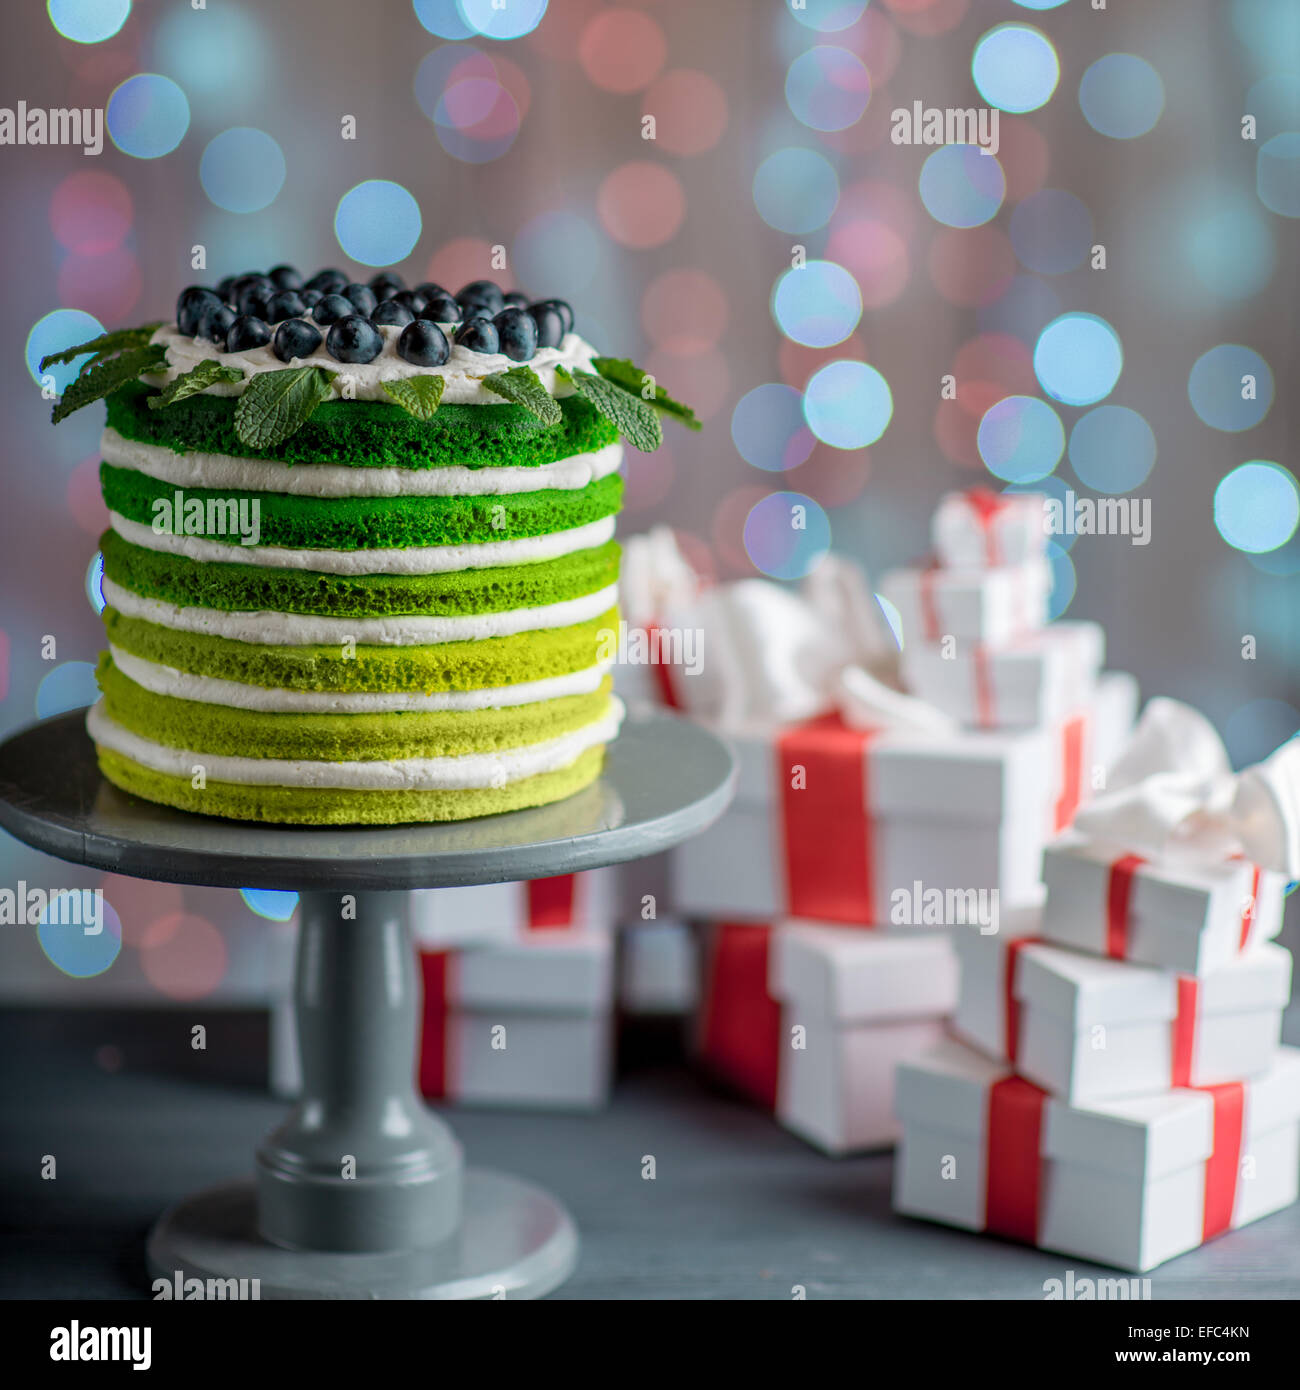 Nice Sponge Happy Birthday Cake With Mascarpone And Grapes On The Stand Gift Boxes Festive Light Bokeh Backgro